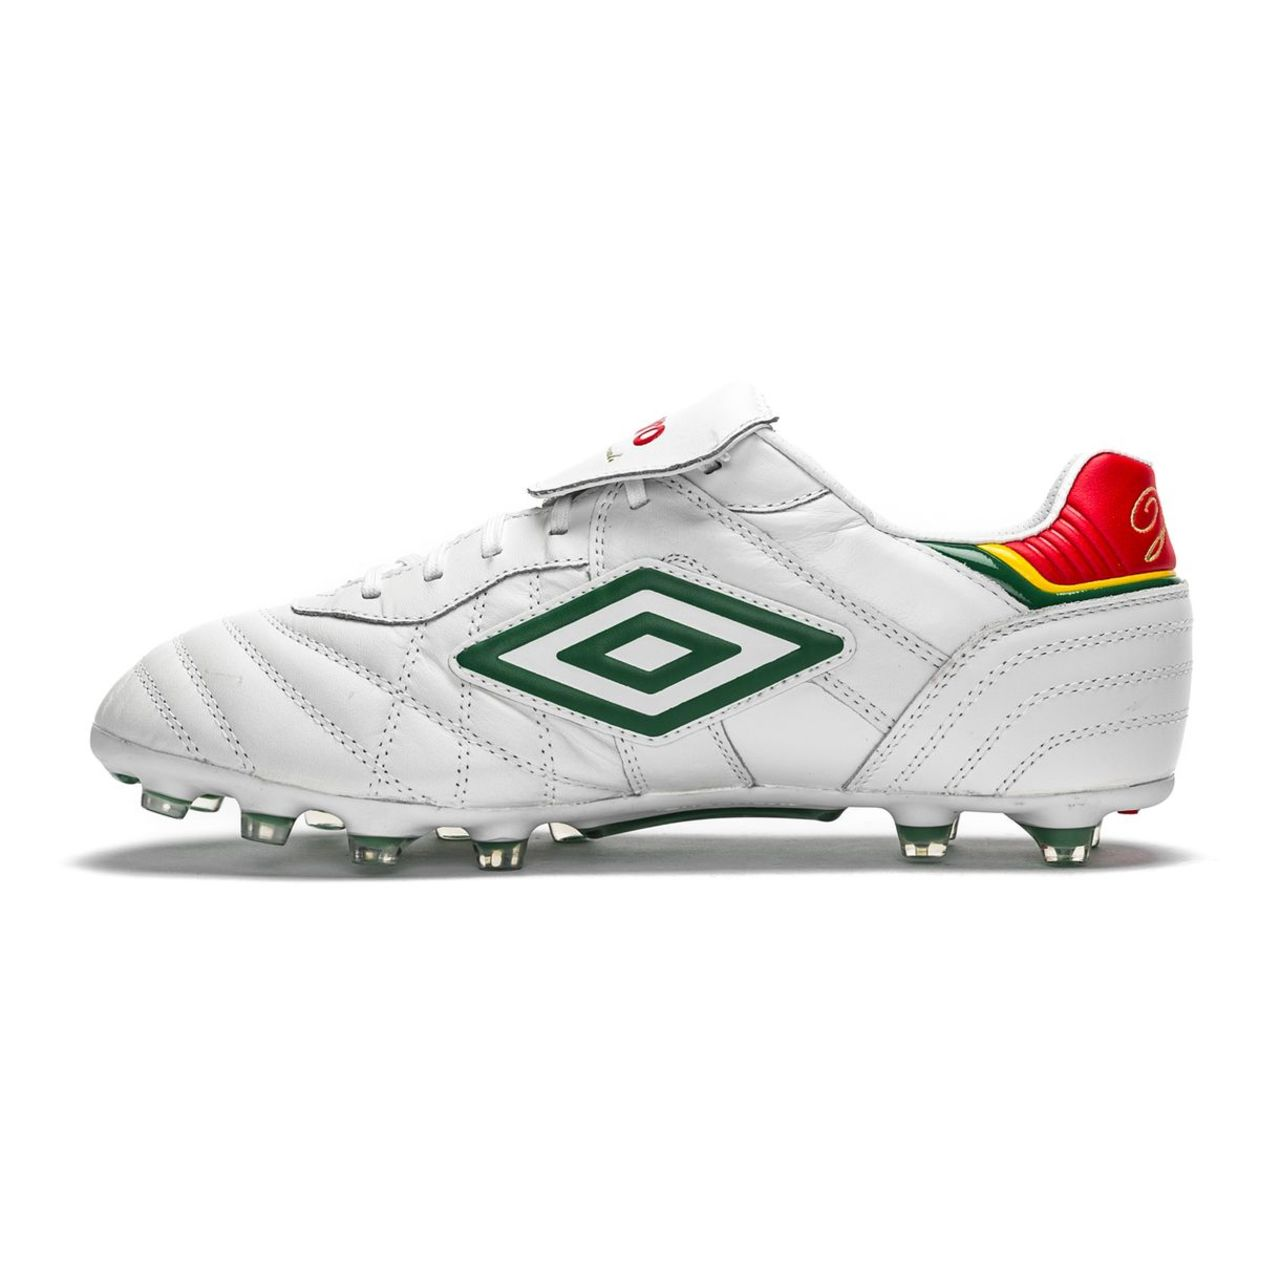 new style 6ab3f 592a7 ... Click to enlarge image umbro-speciali-eternal-pro-hg-pepe- ...